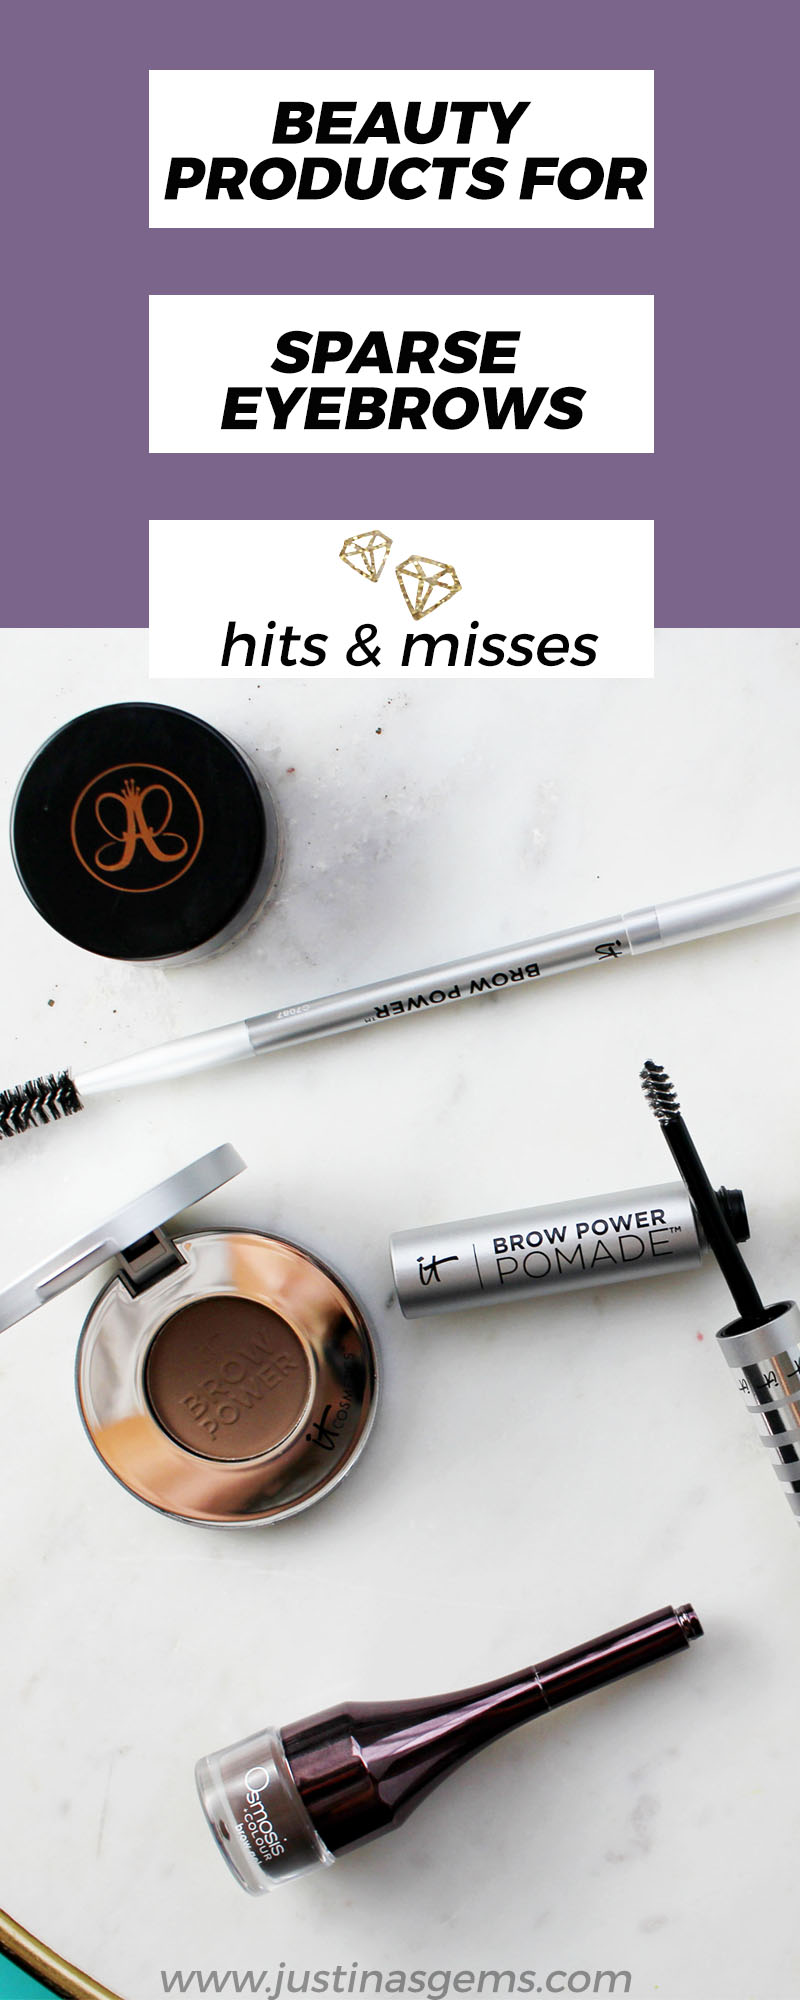 Beauty products for sparse eyebrows